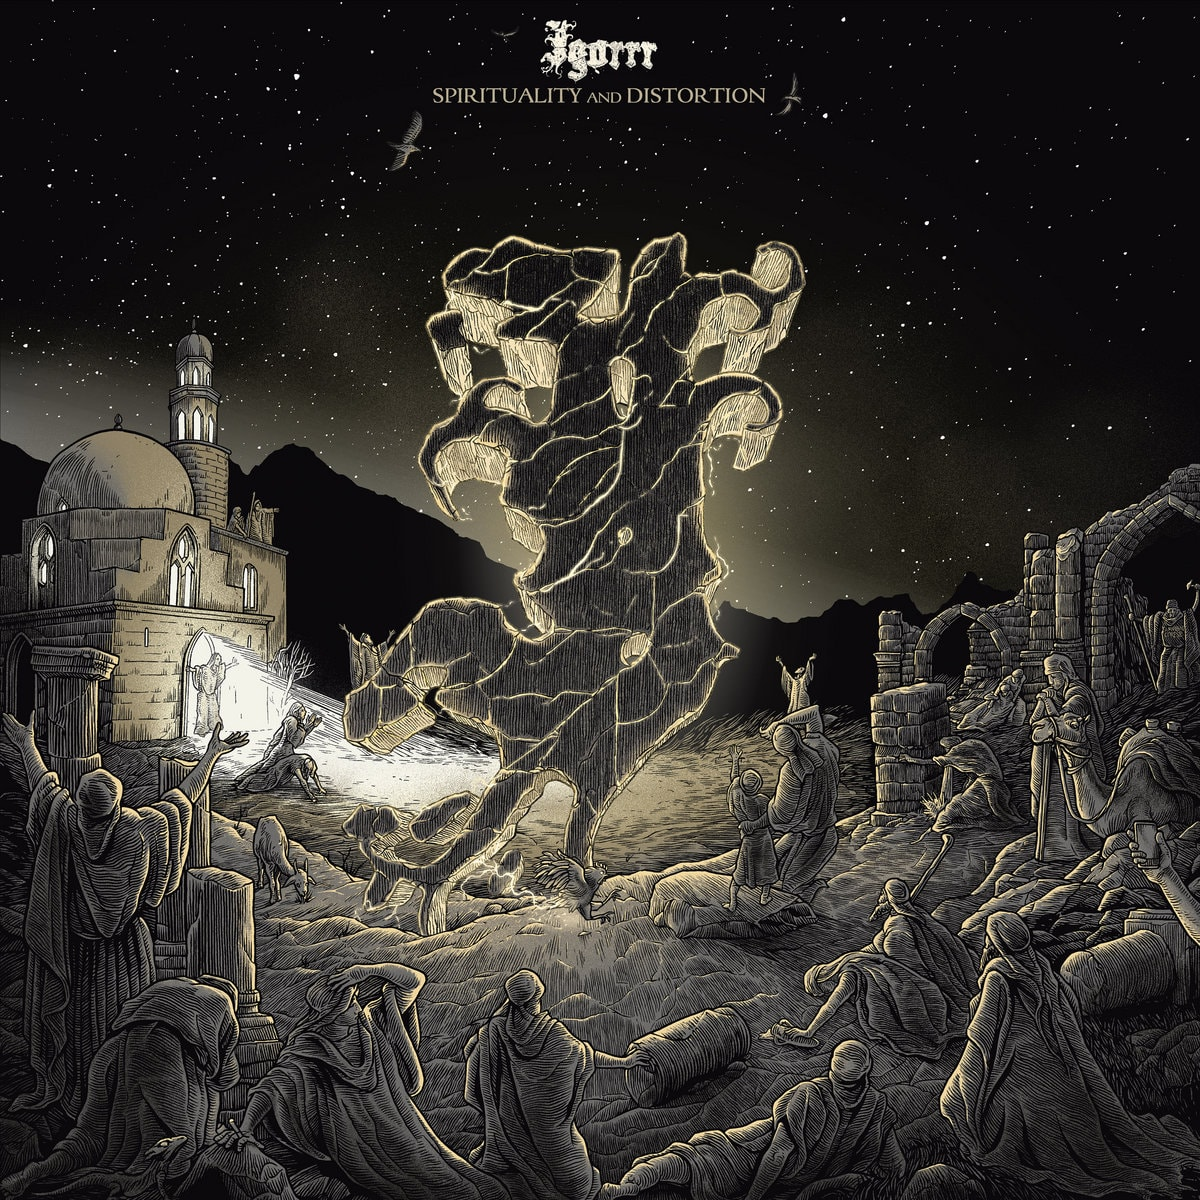 IGORRR (FRA) – Spirituality and distortion, 2020